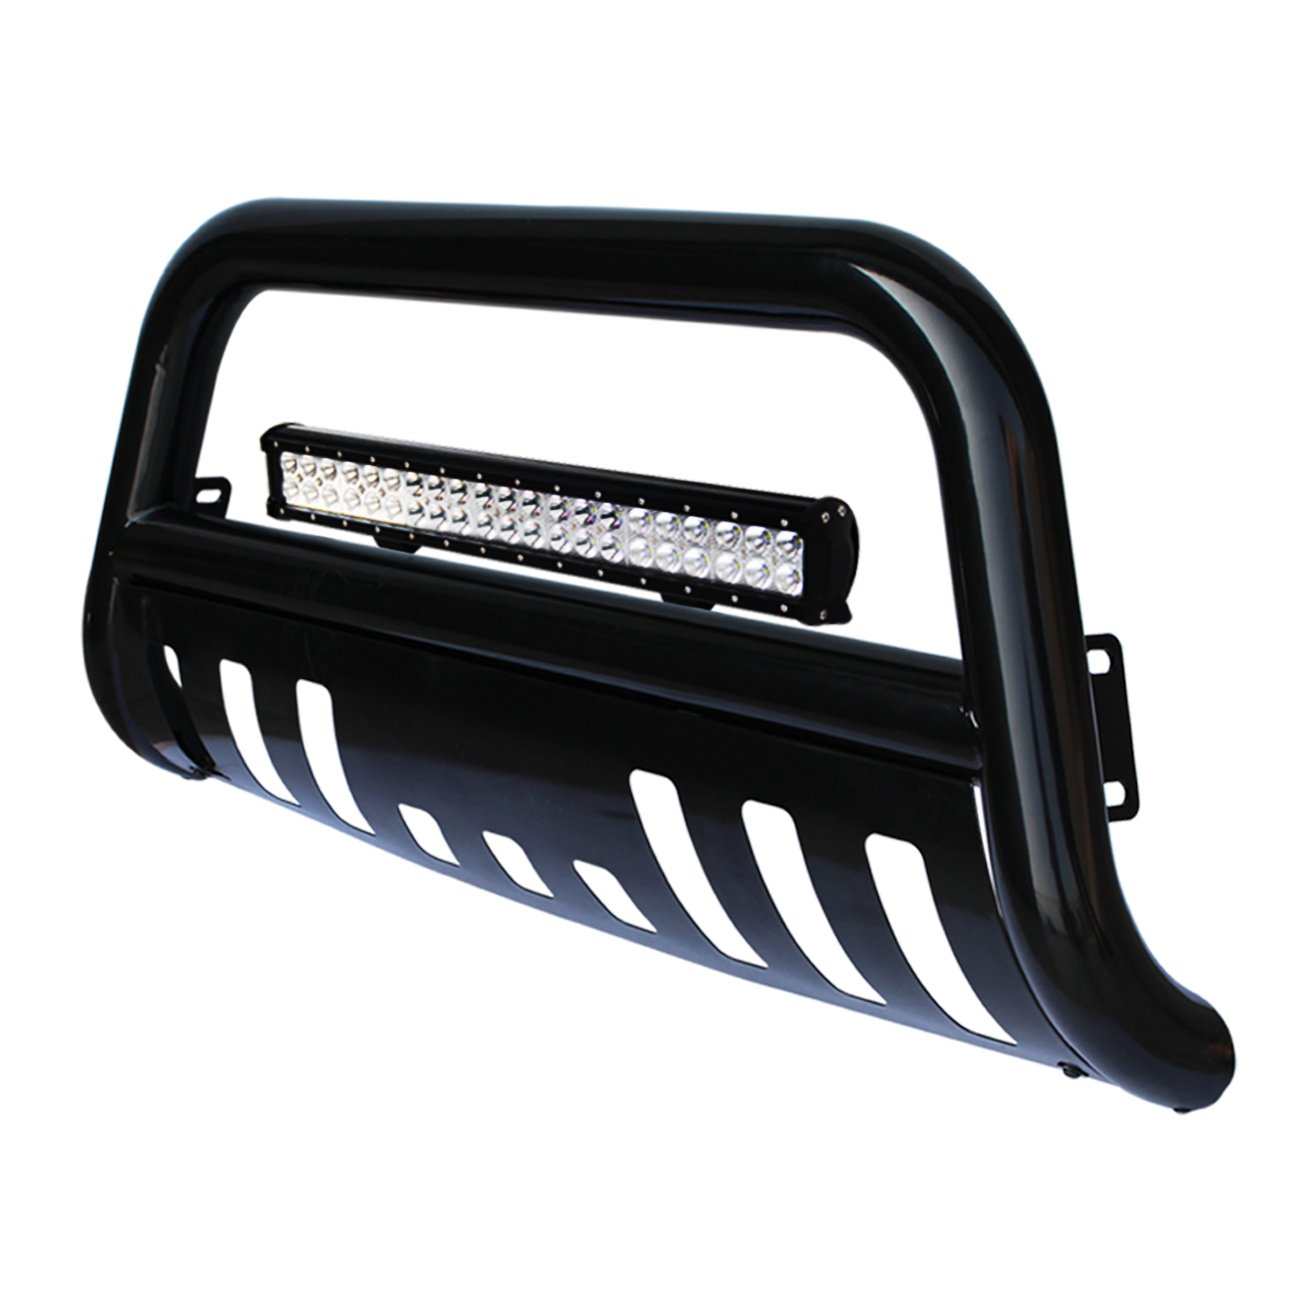 Cheap Led Light Bar Dodge Ram Find Deals On Wiring Guide P U Get Quotations Tuokiy Black Bull Bumper Grille Guard For 03 05 1500 06